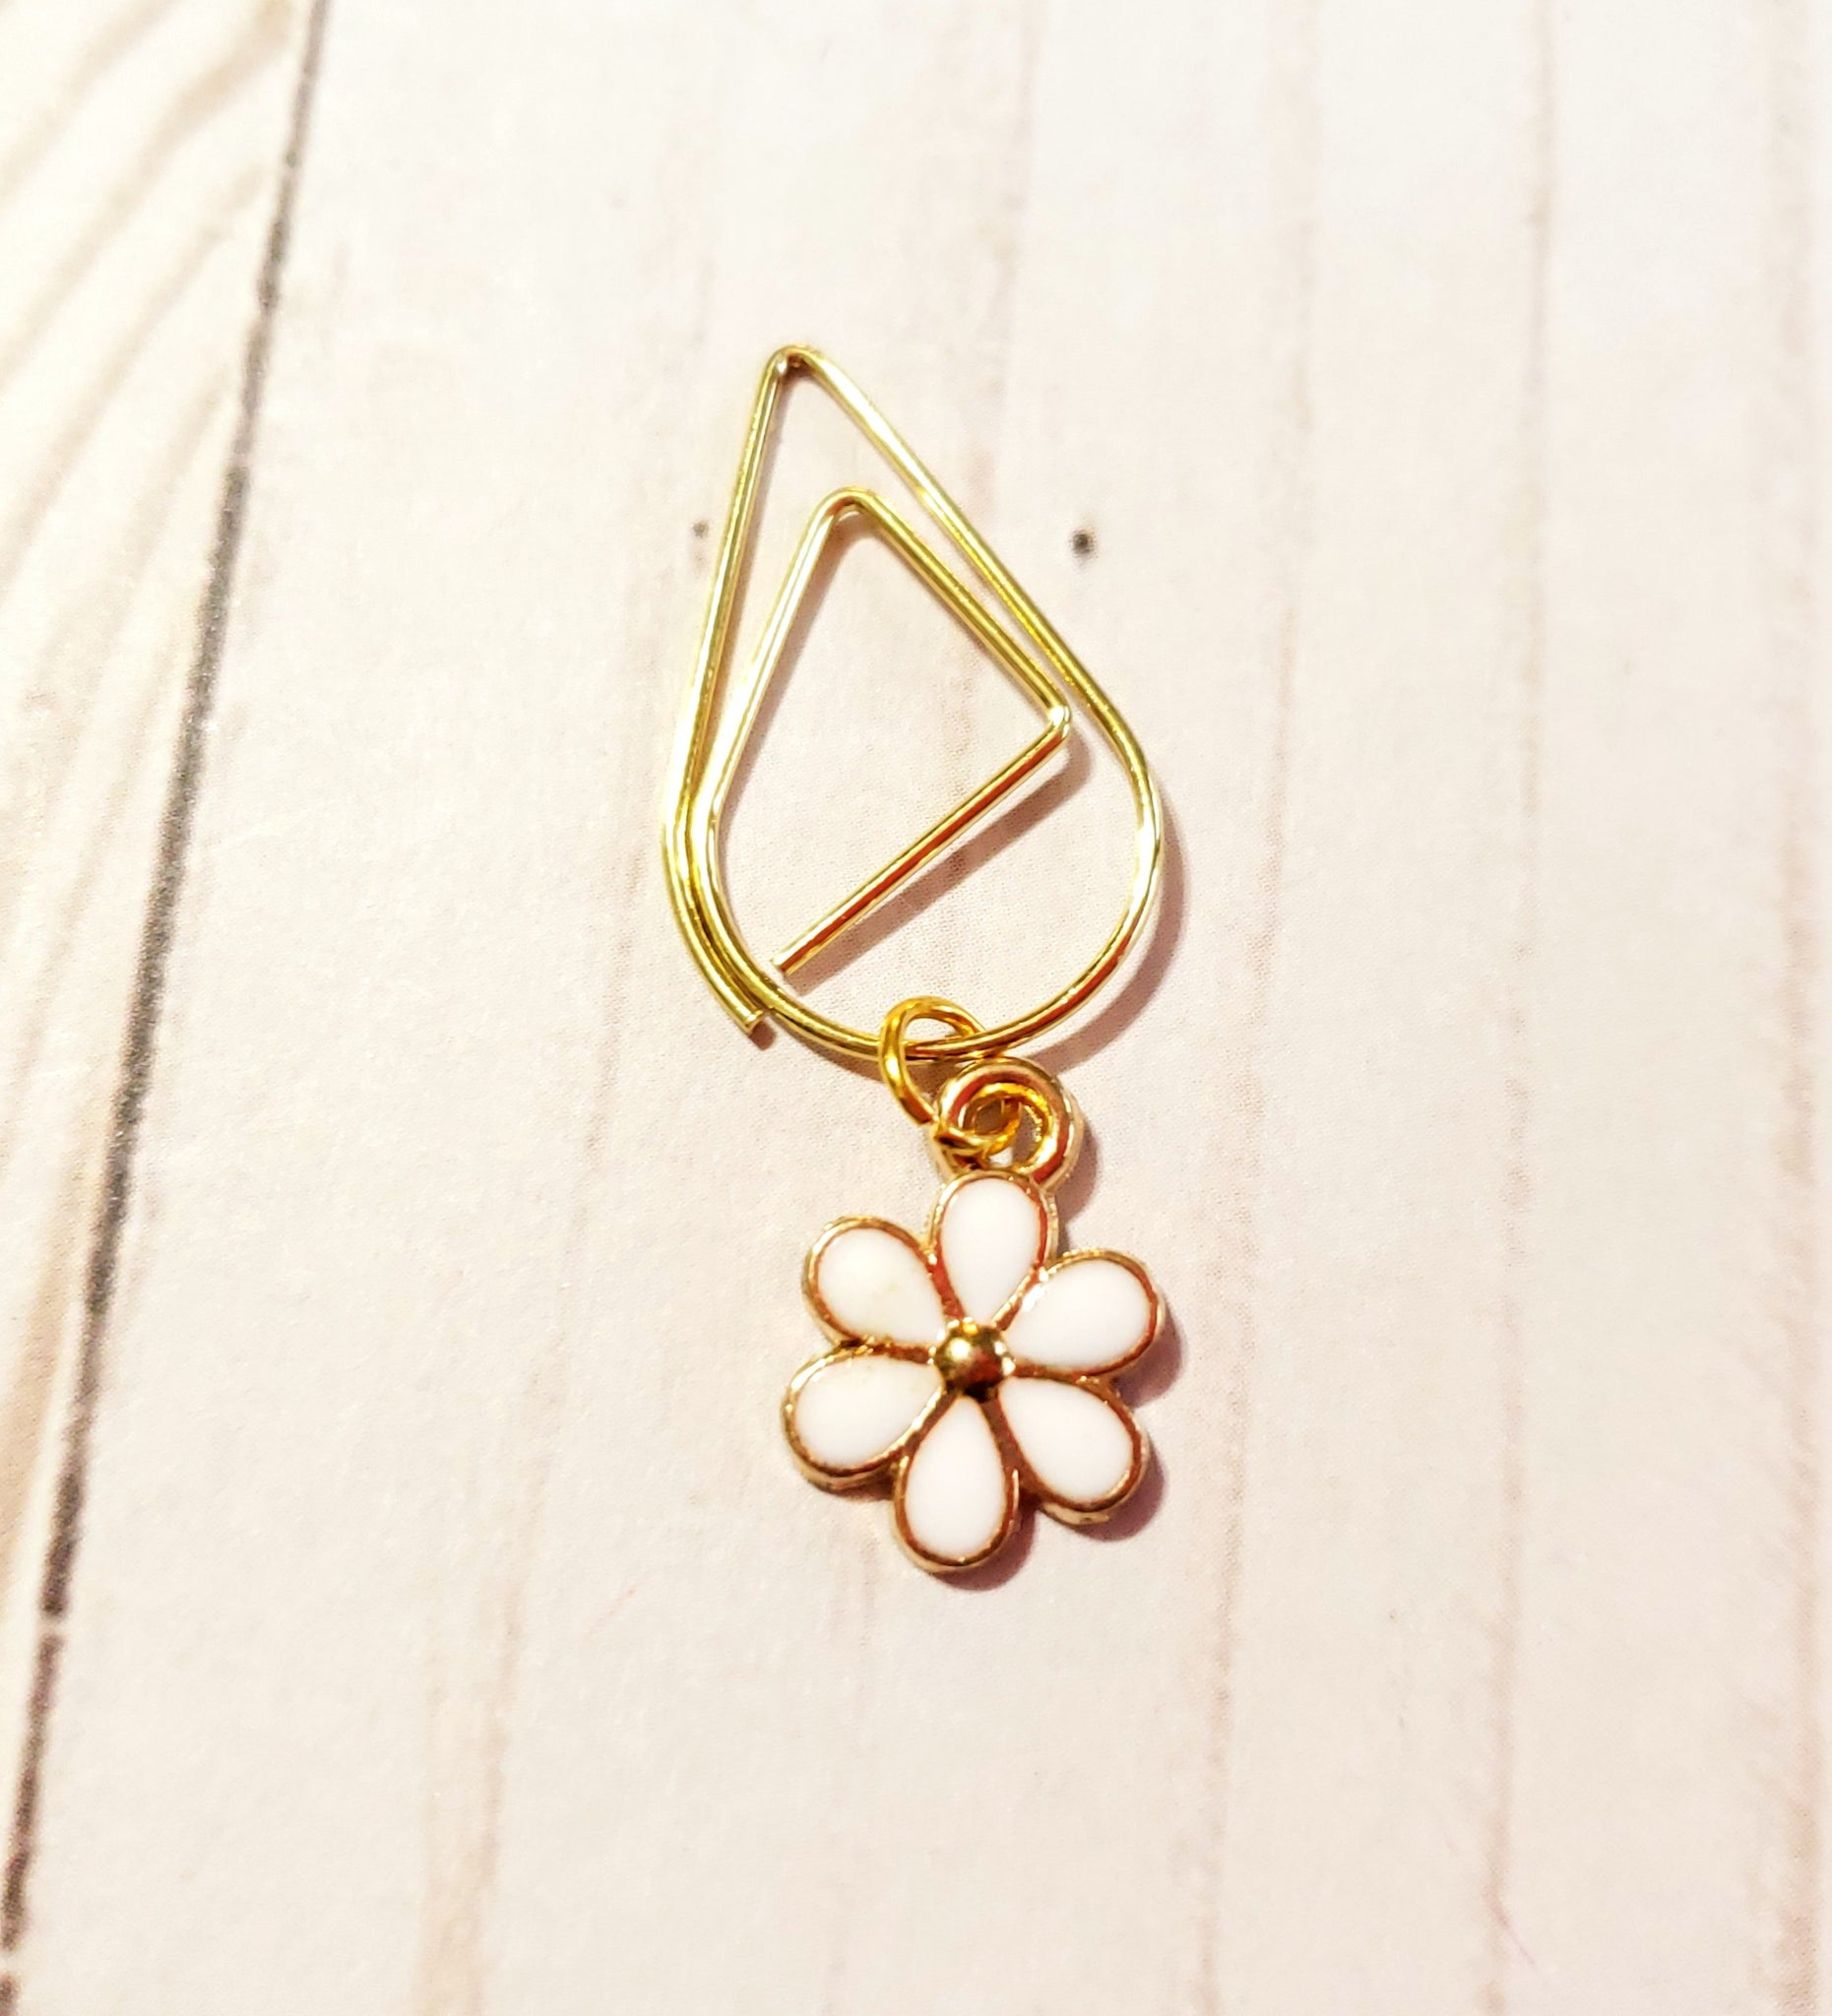 Flower Planner Clip / Planner Charm / TN Clip / TN Charm / Dangle Planner Clip / Dangle Planner Charm / Planner Accessory